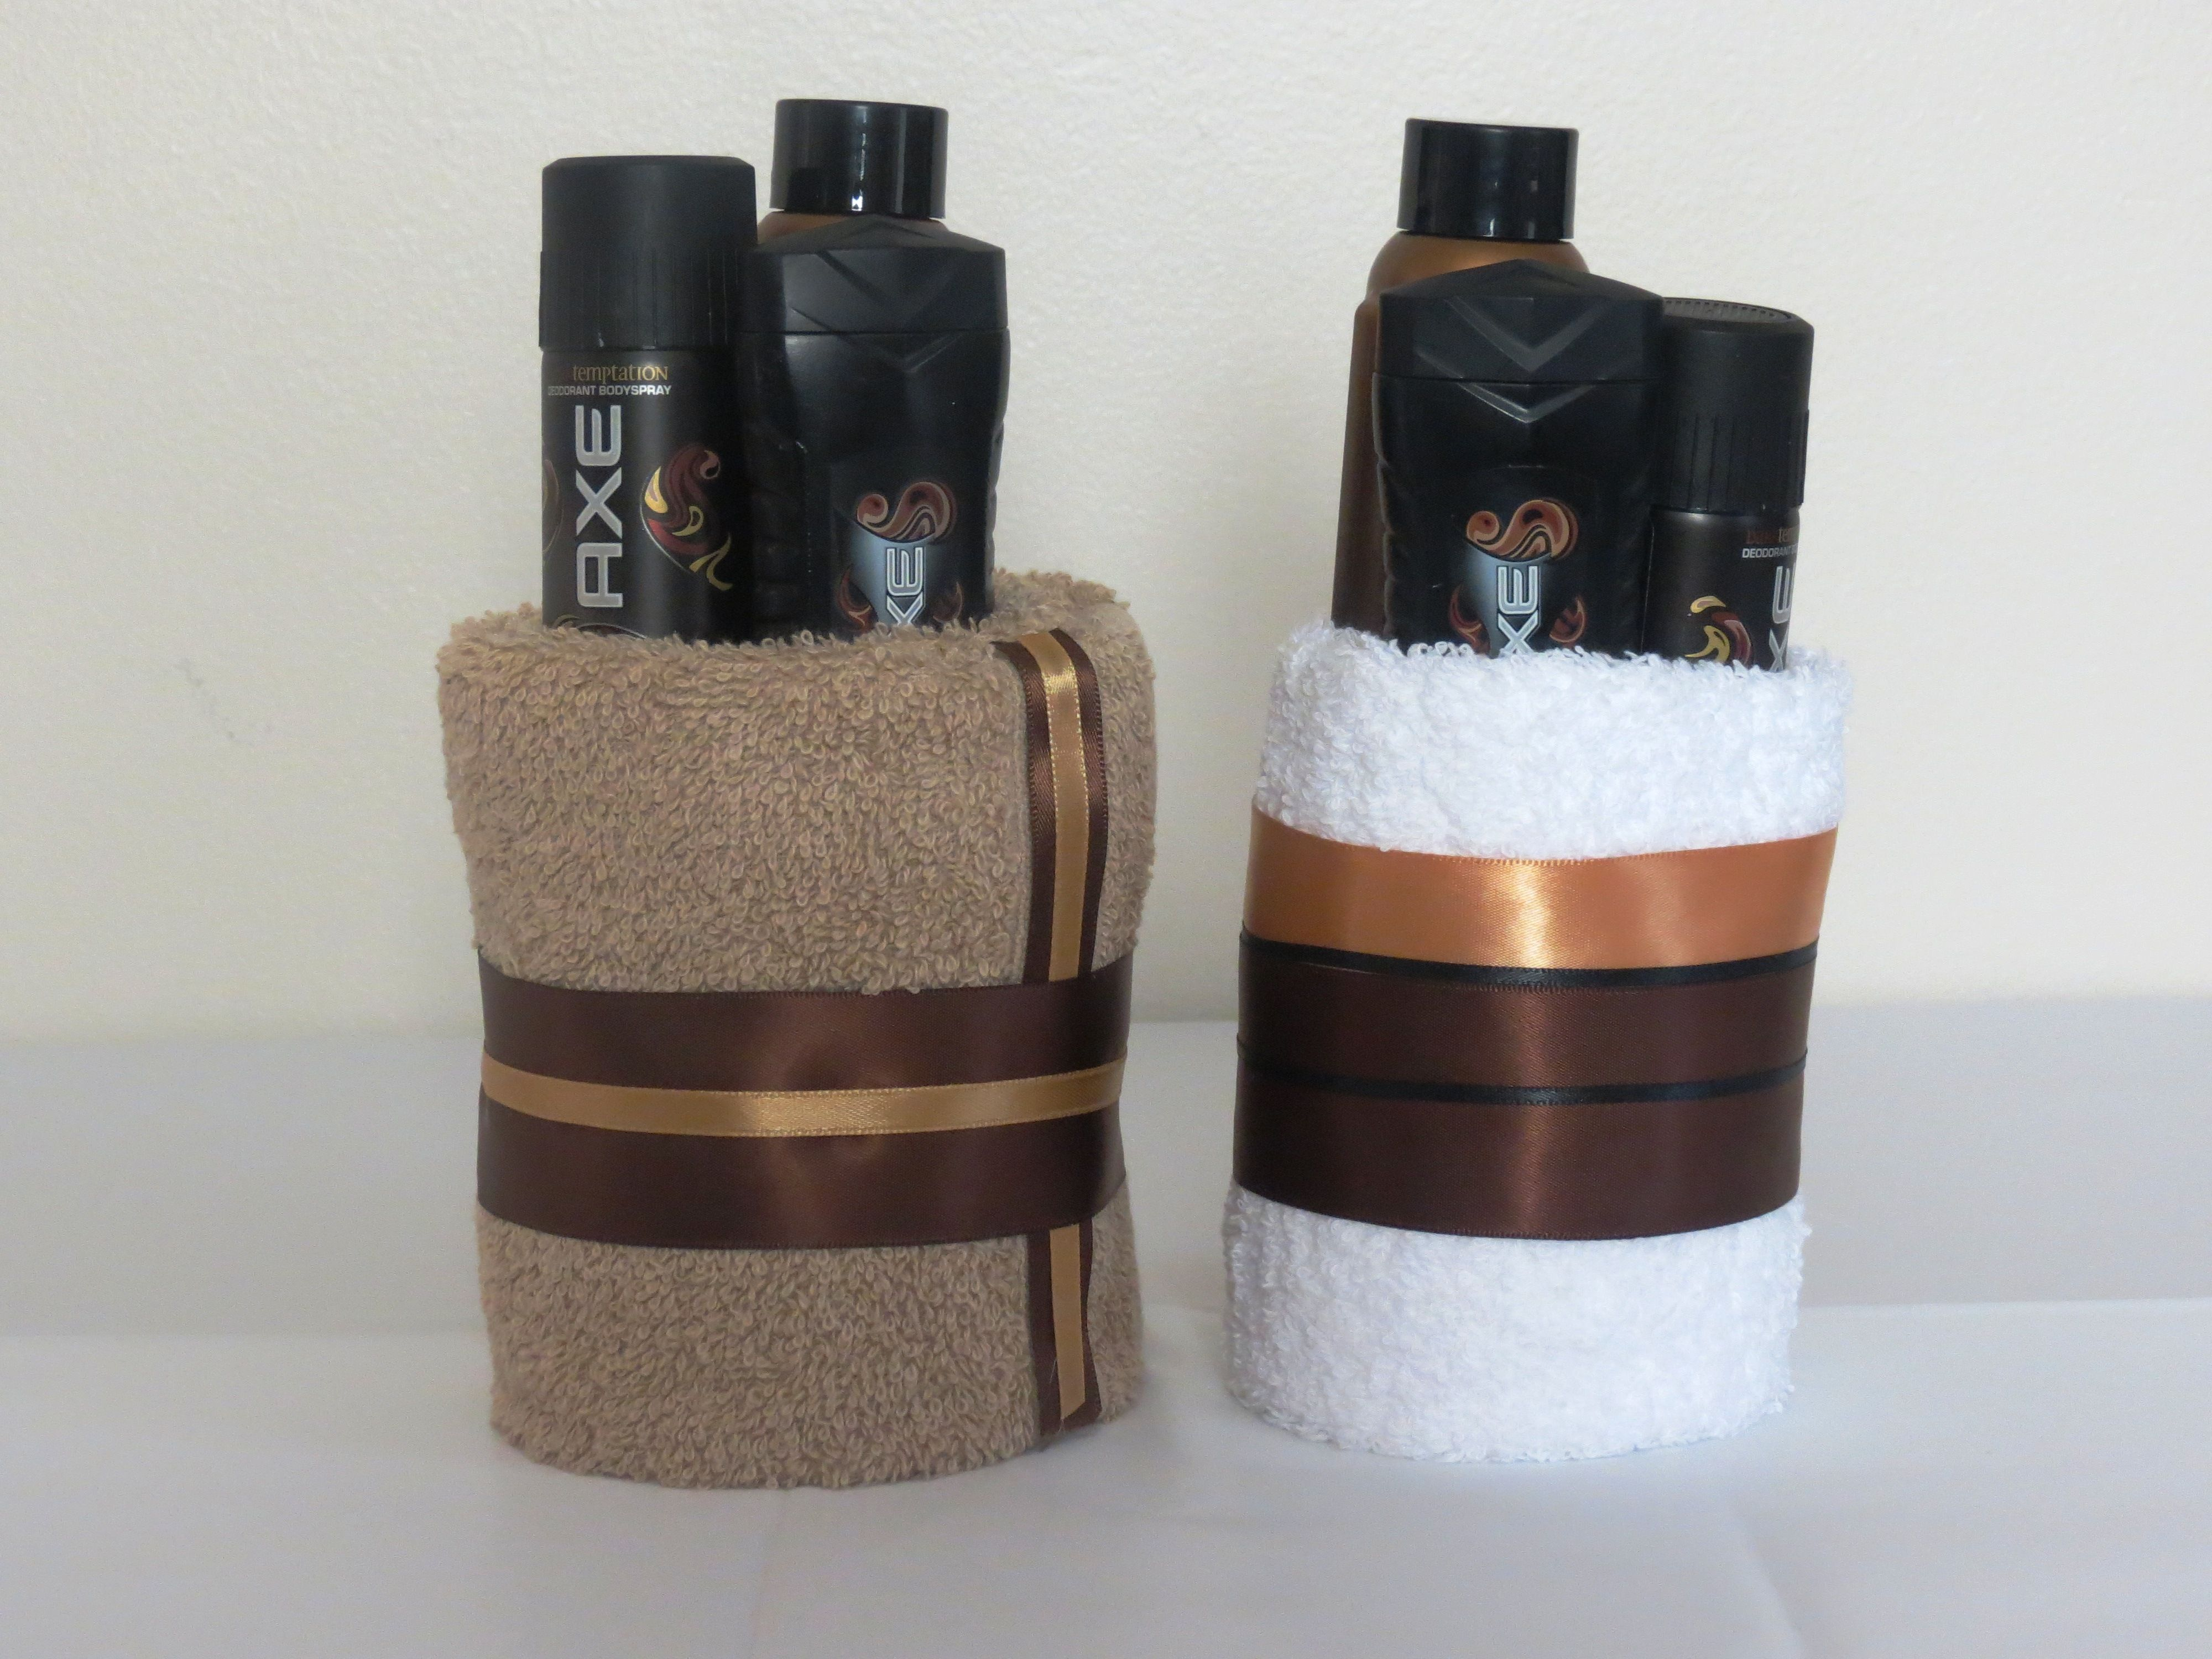 301b3c091e52a Mini Towel Cake for men. A great gift for the man in your life -- Birthdays